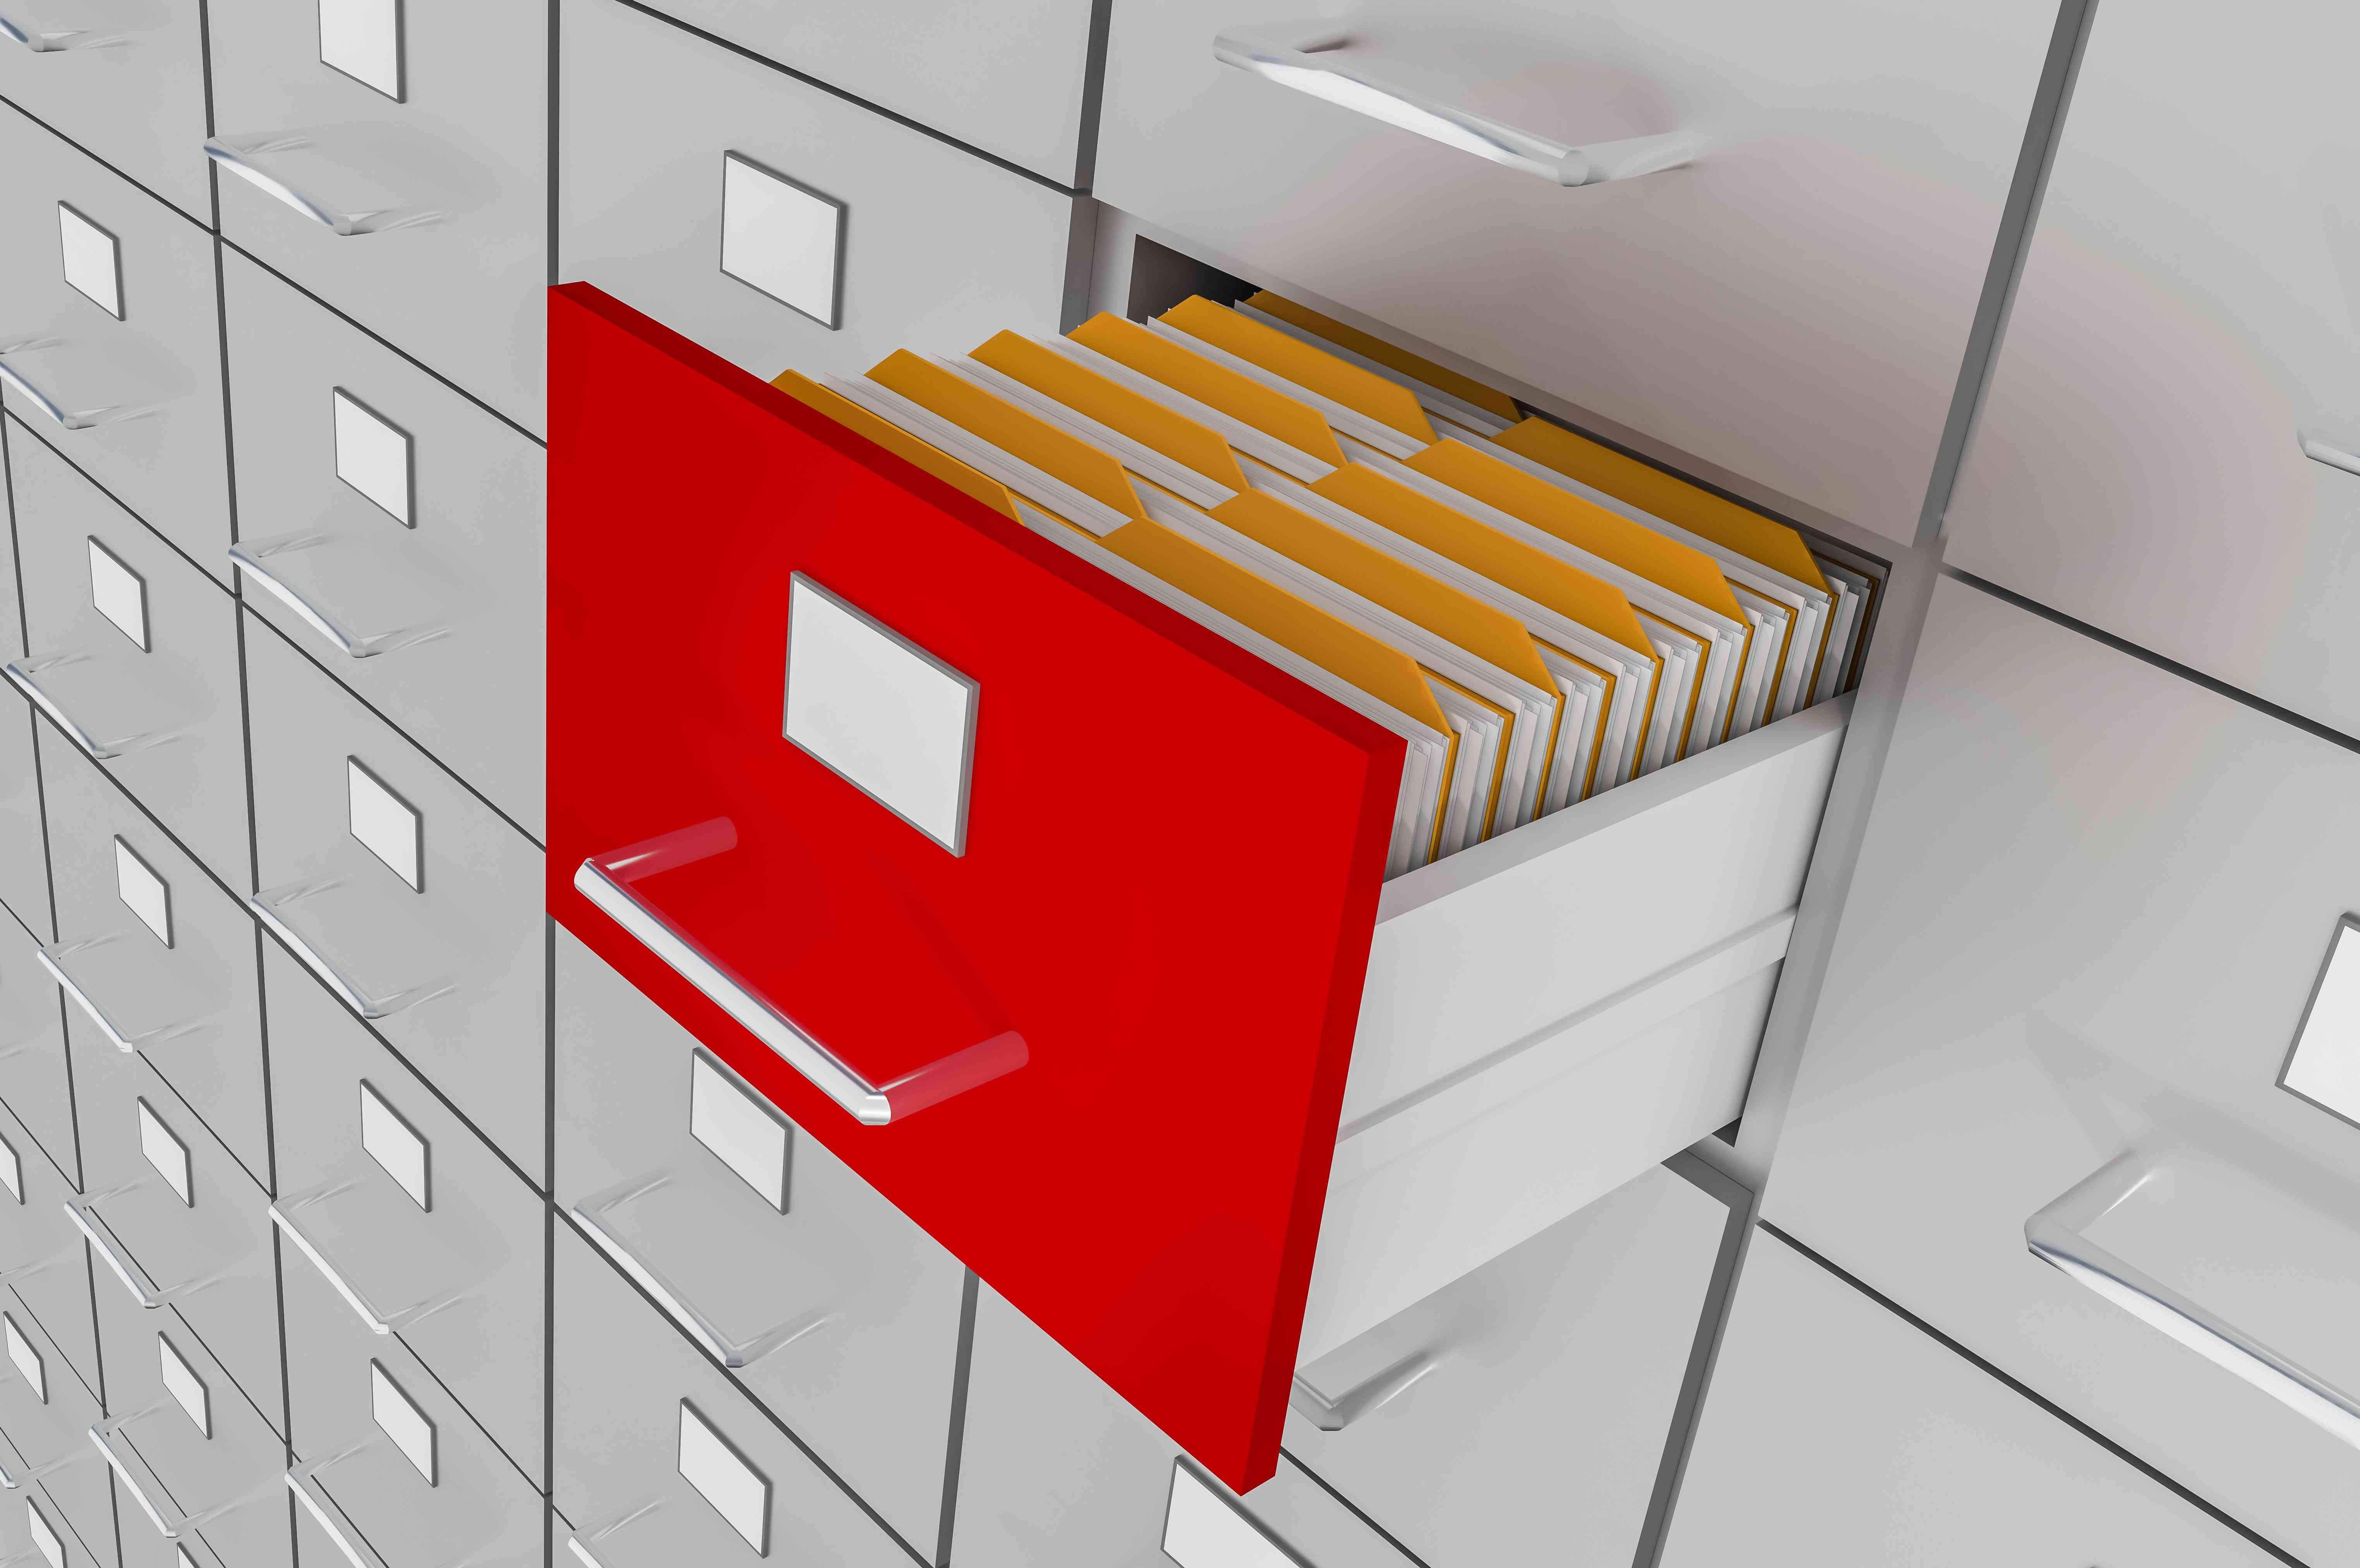 Open file cabinet with files inside